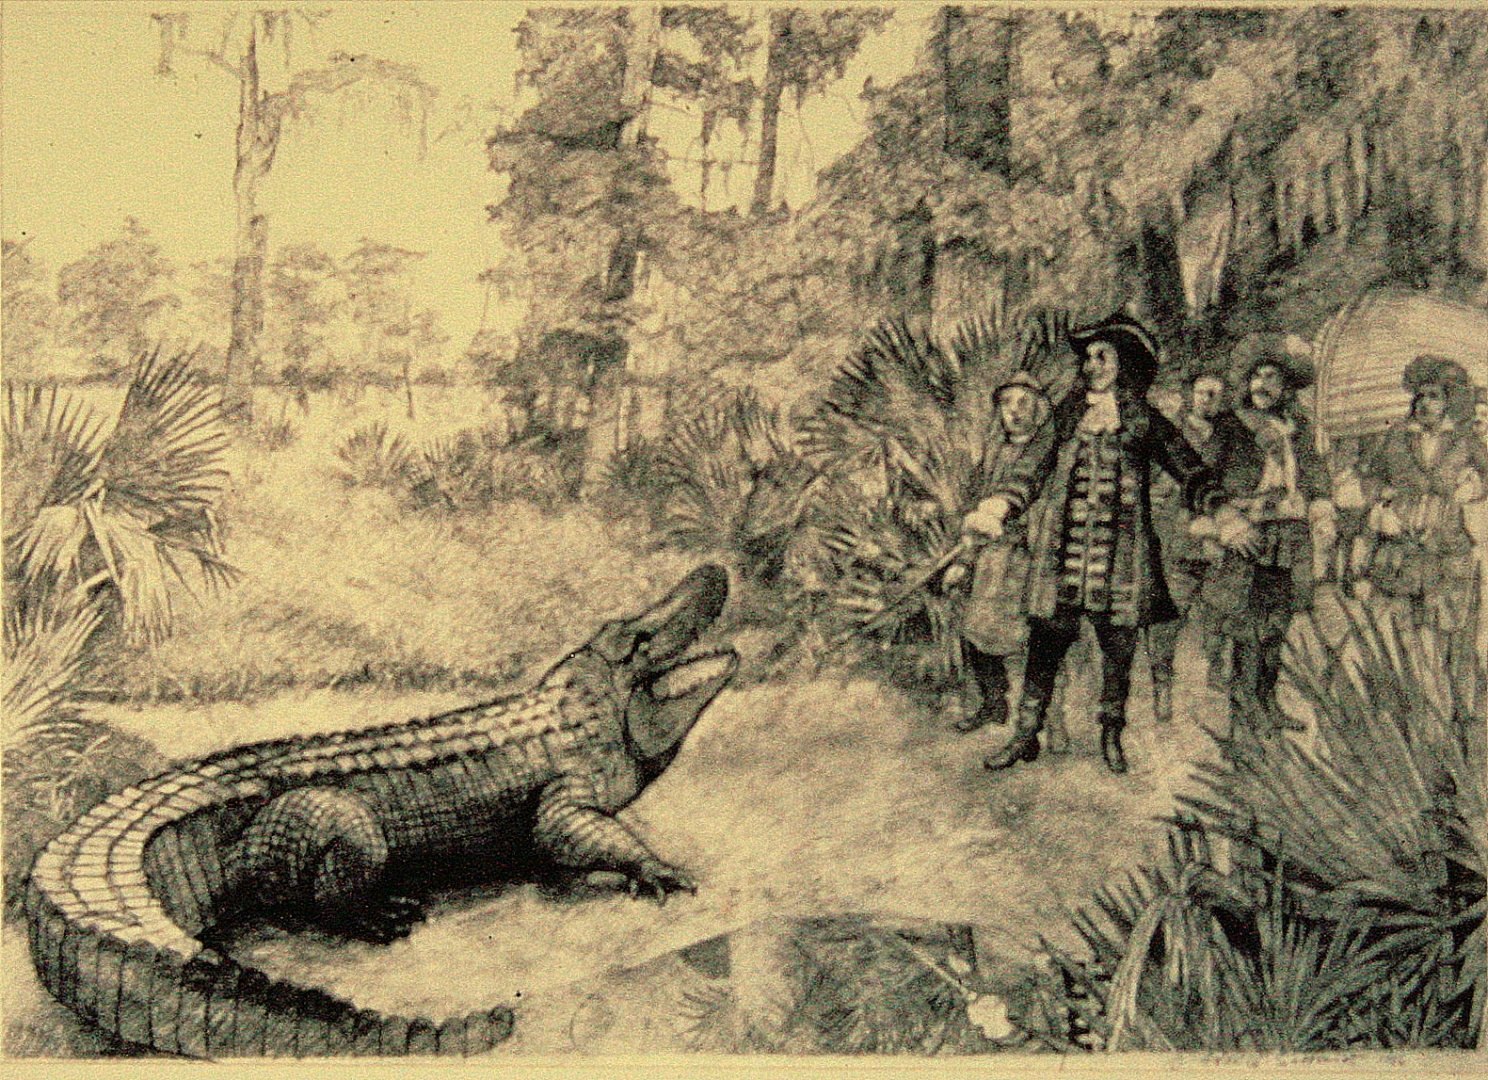 Bienville and an Alligator :: Carbon pencil on rag paper